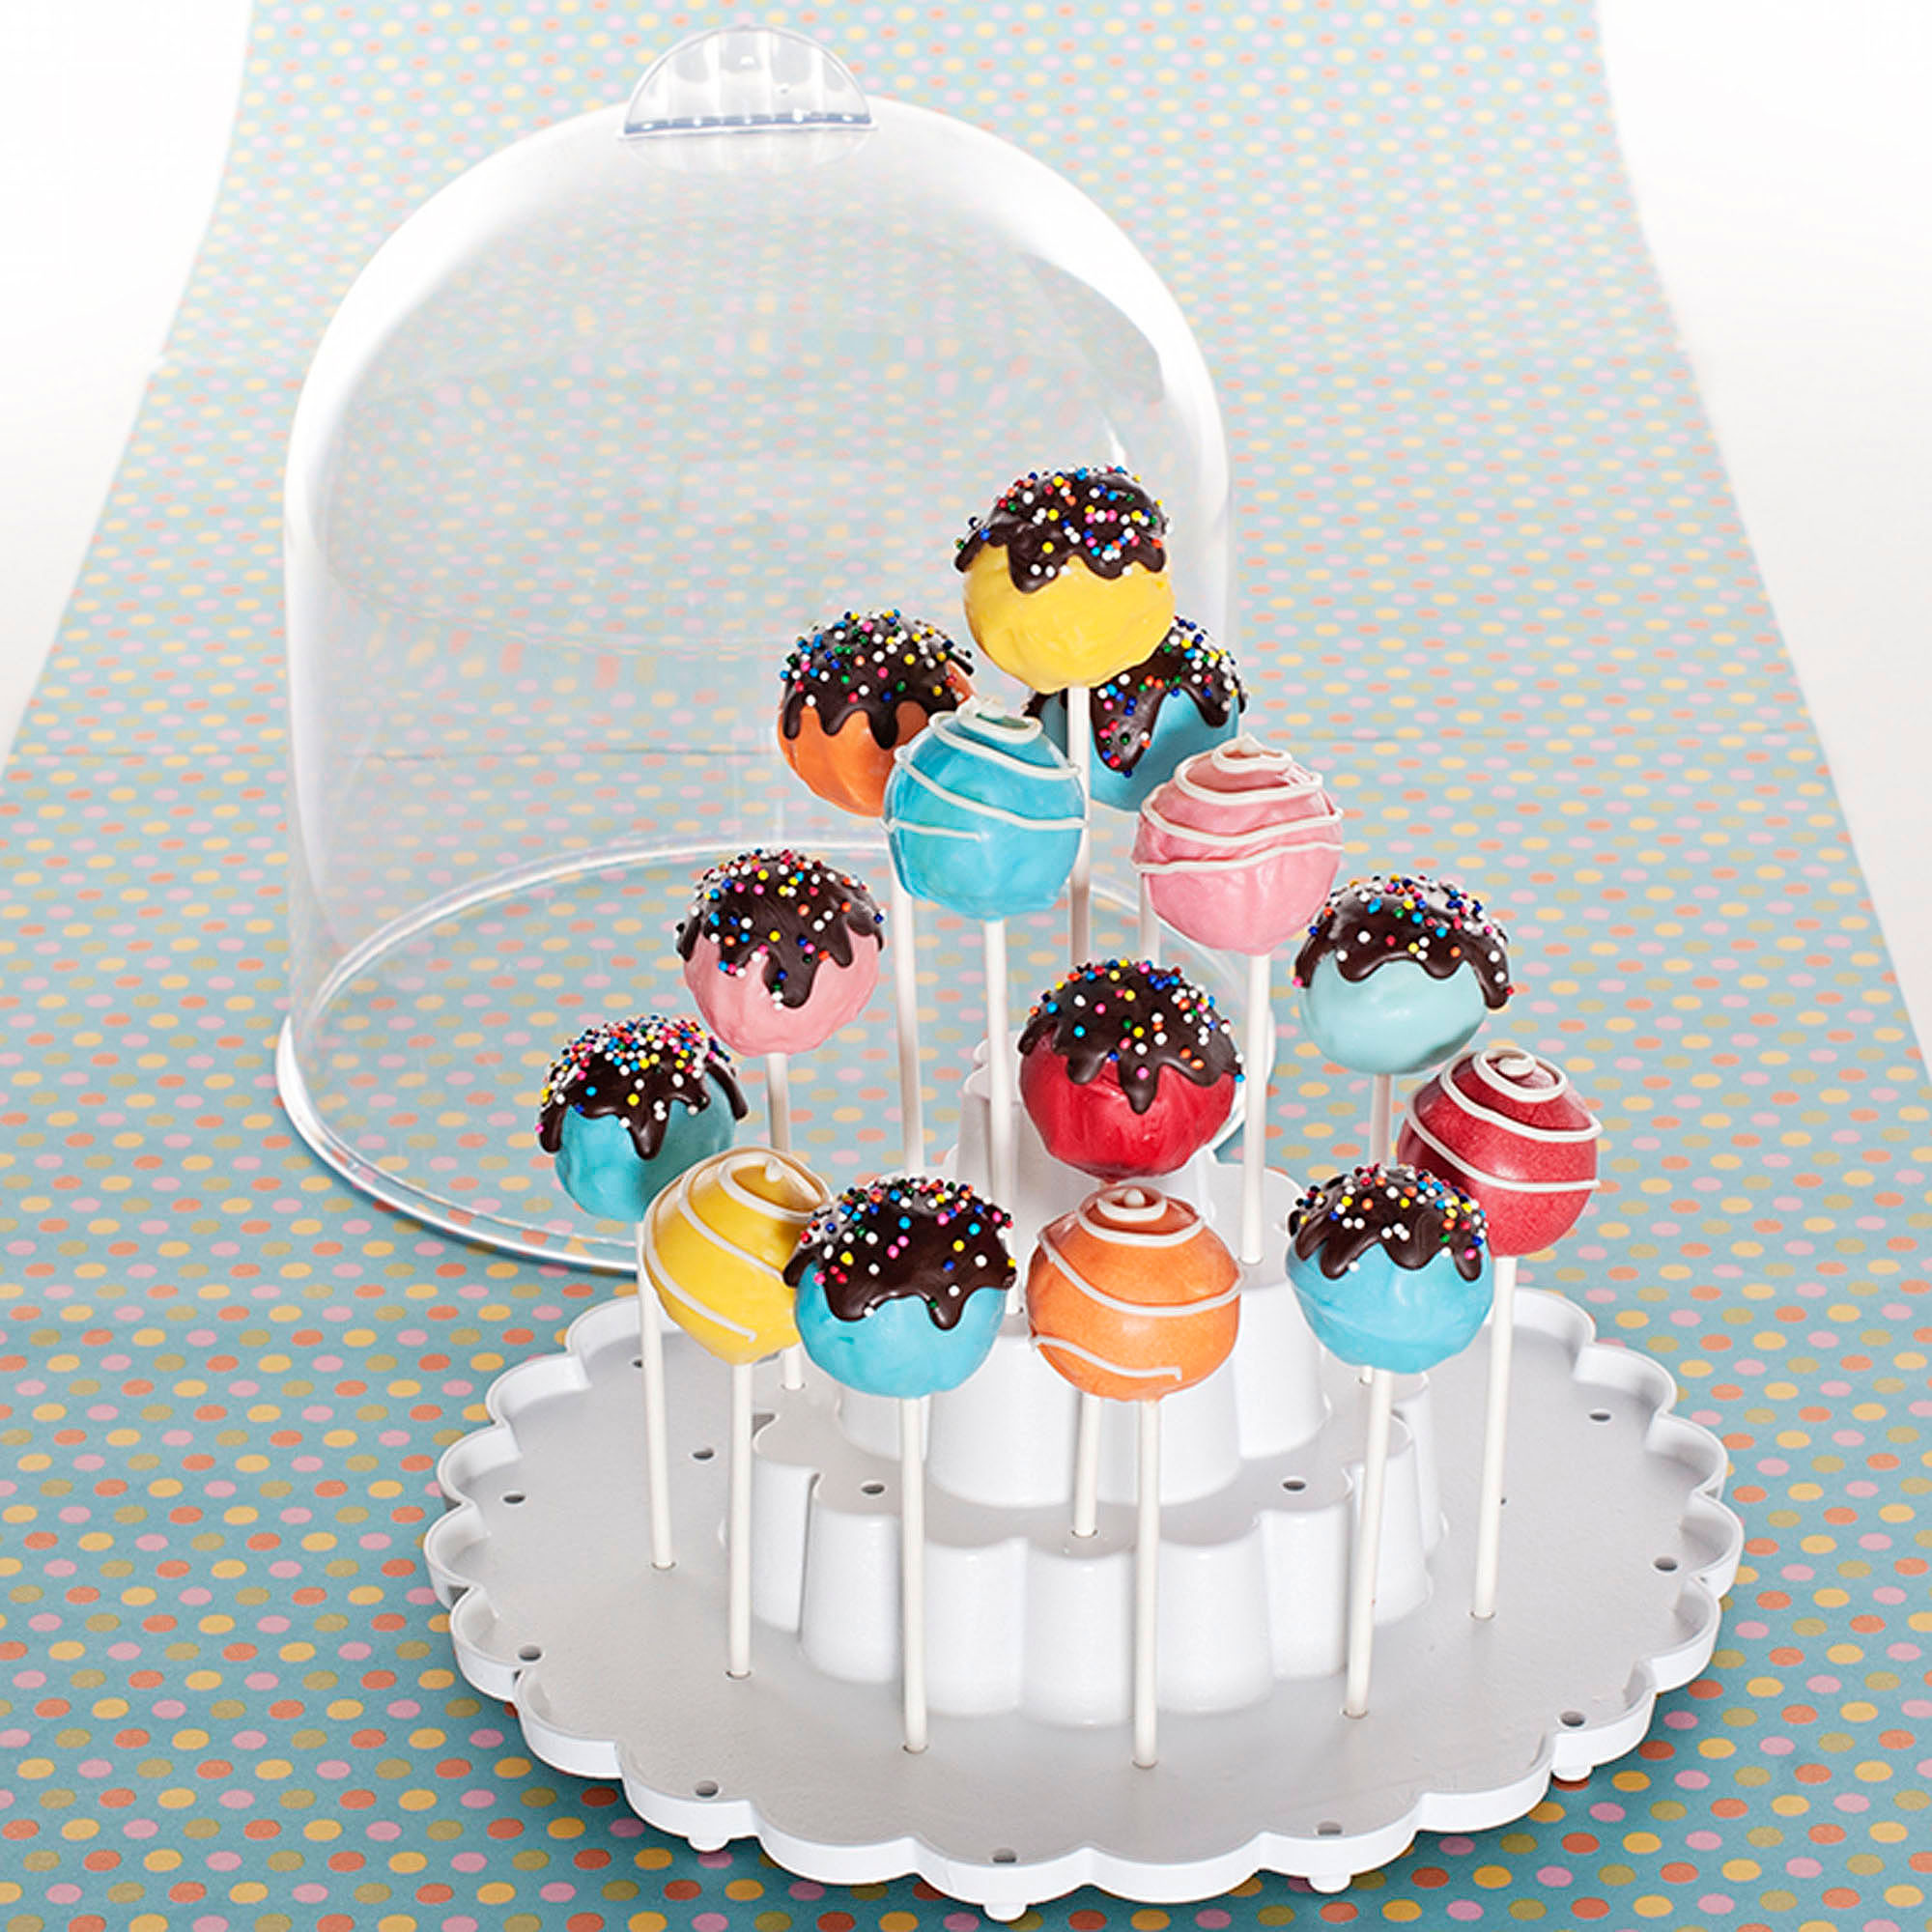 Nordic Ware Cake Pops Keeper with Domed Cover